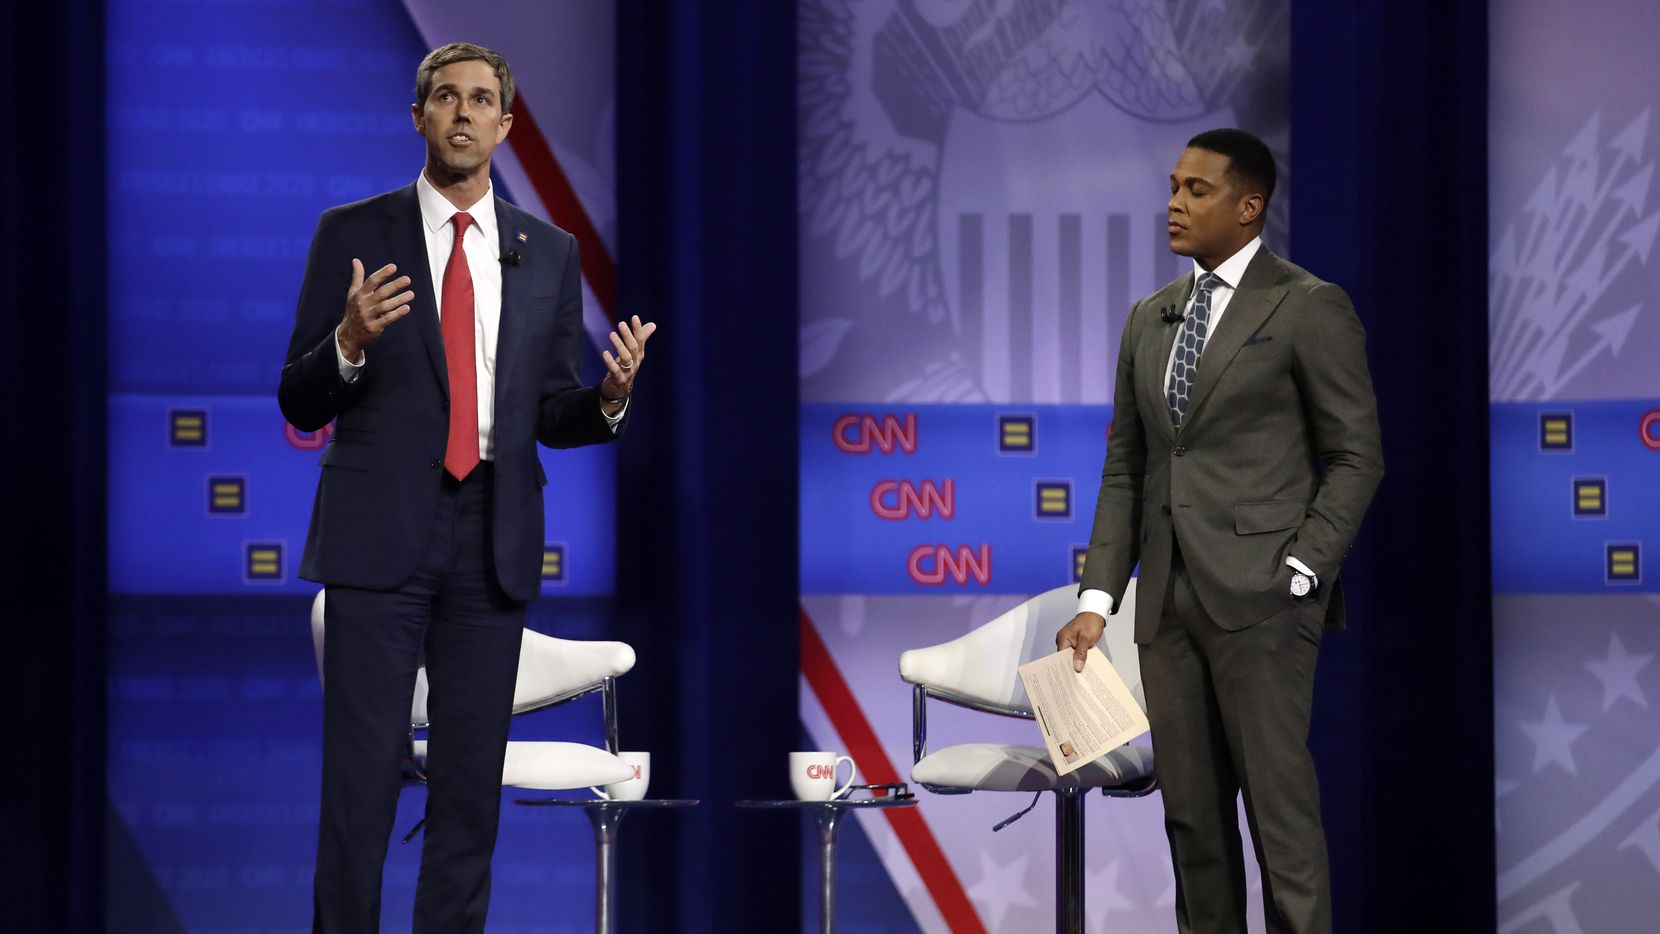 Democratic presidential candidate former Texas Rep. Beto O'Rourke (left) speaks as CNN moderator Don Lemon listens during the Power of our Pride Town Hall on Oct. 10, 2019, in Los Angeles. AP Photo/Marcio Jose Sanchez